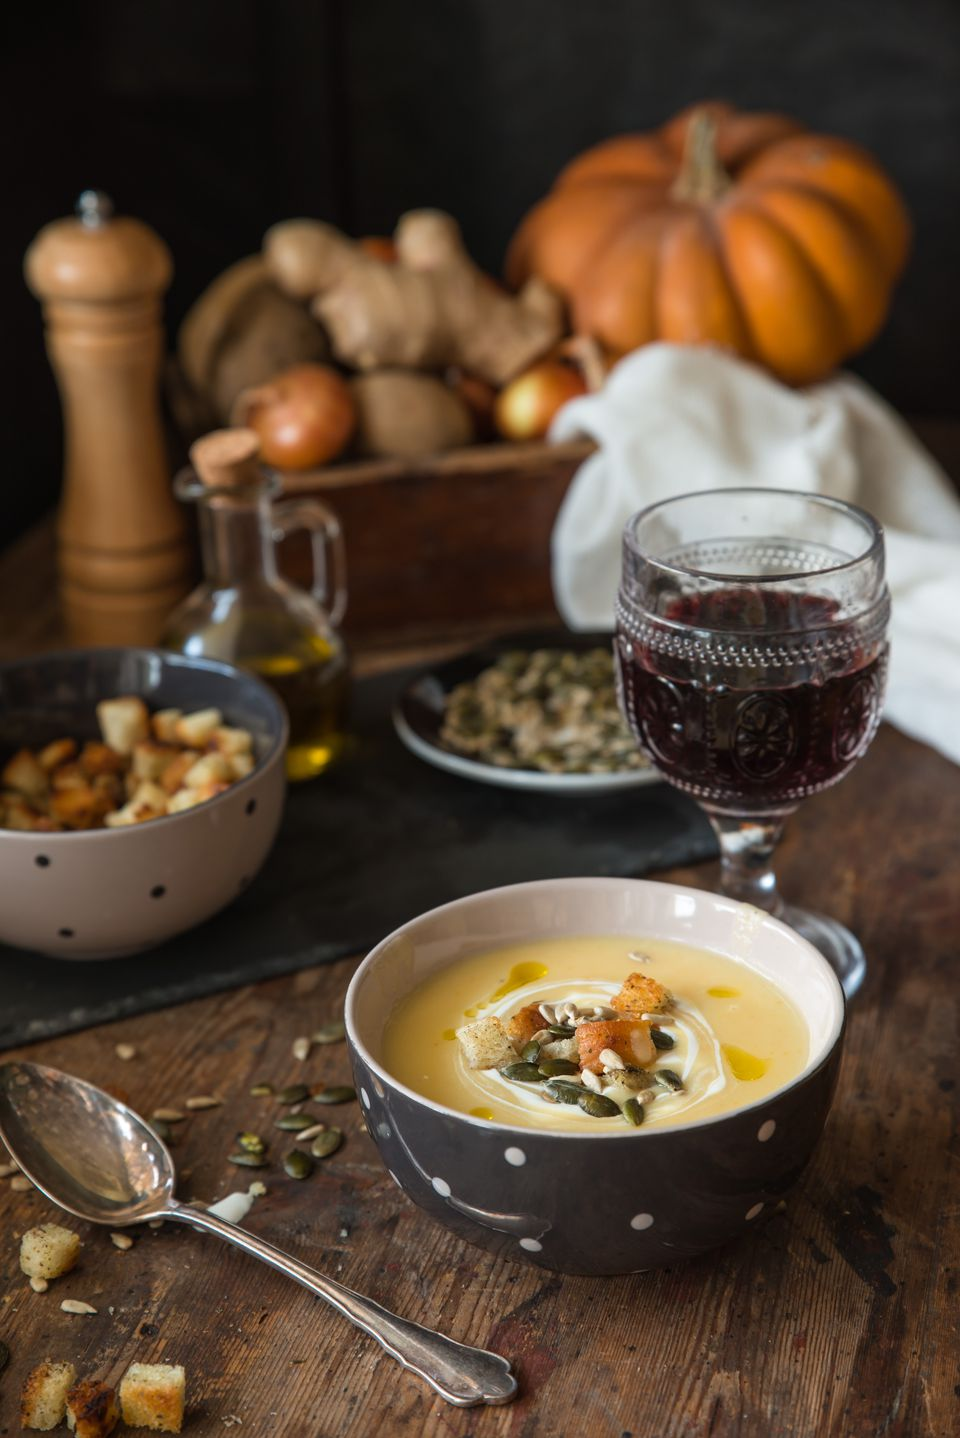 Potato soup with cream and glass of red wine